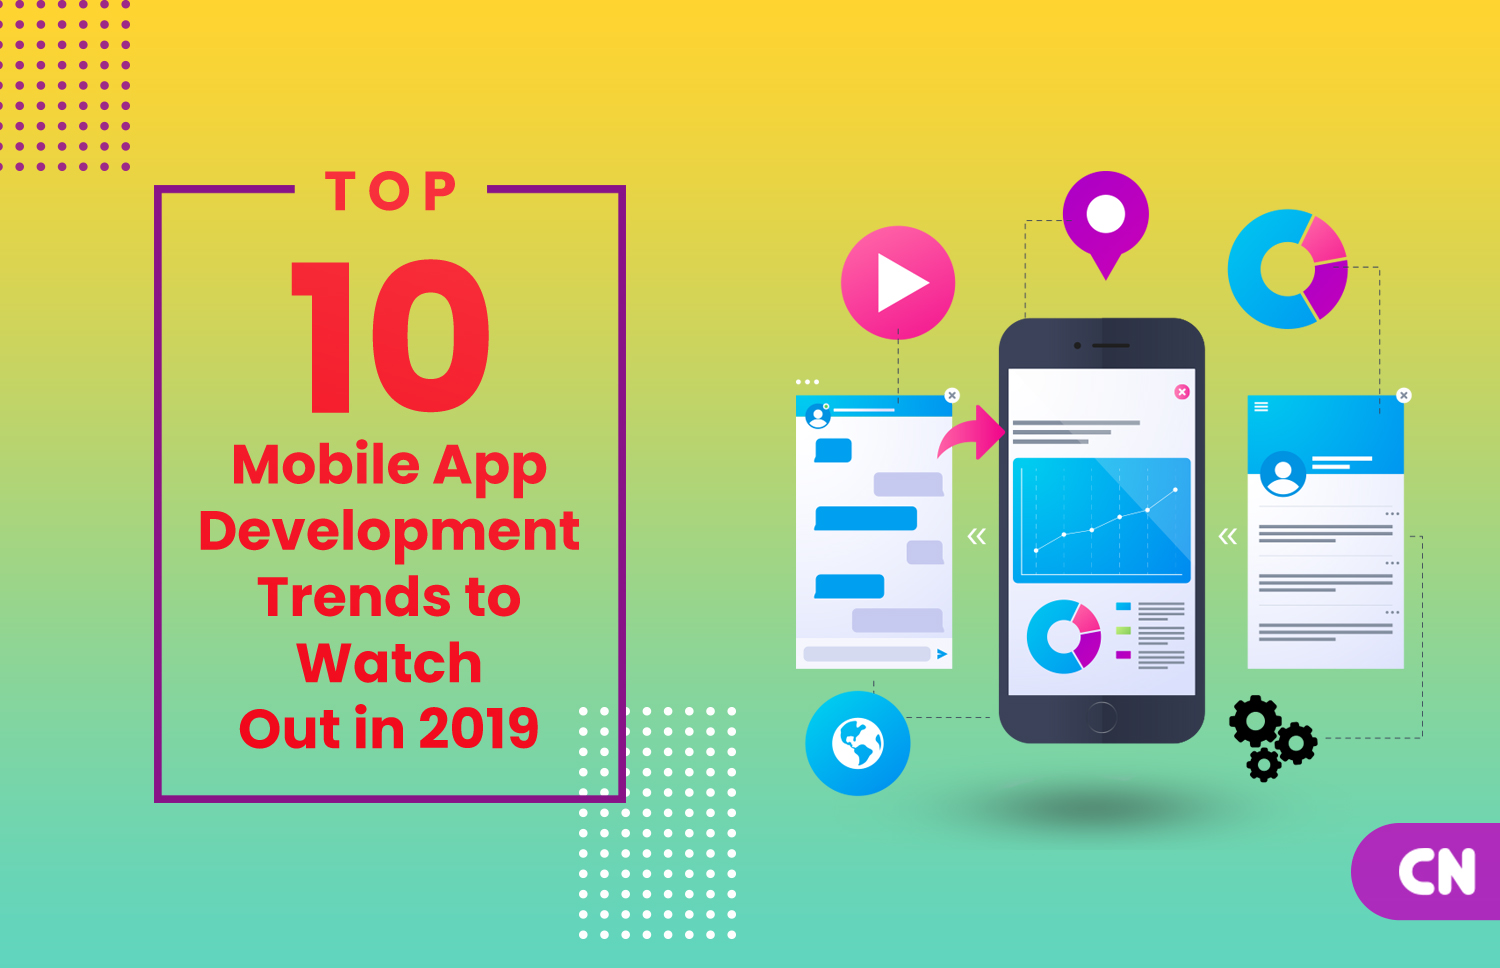 Top Ten Mobile App Development Trends To Watch Out In 2019 | Capital